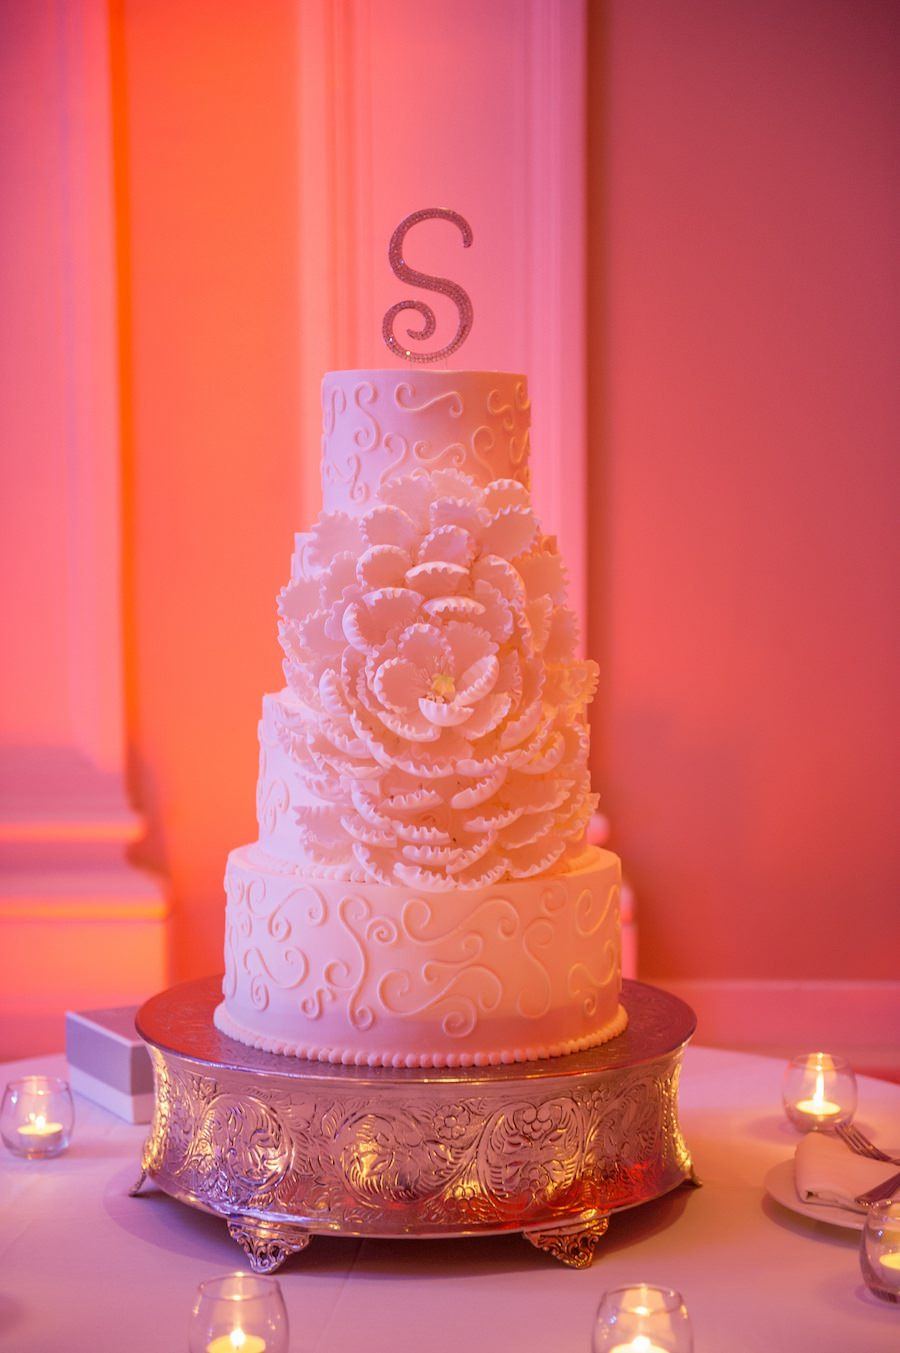 Four Tiered Round White Wedding Cake with Custom Lace Pattern and Blooming Sugar Flower with Sparkle Cake Topper